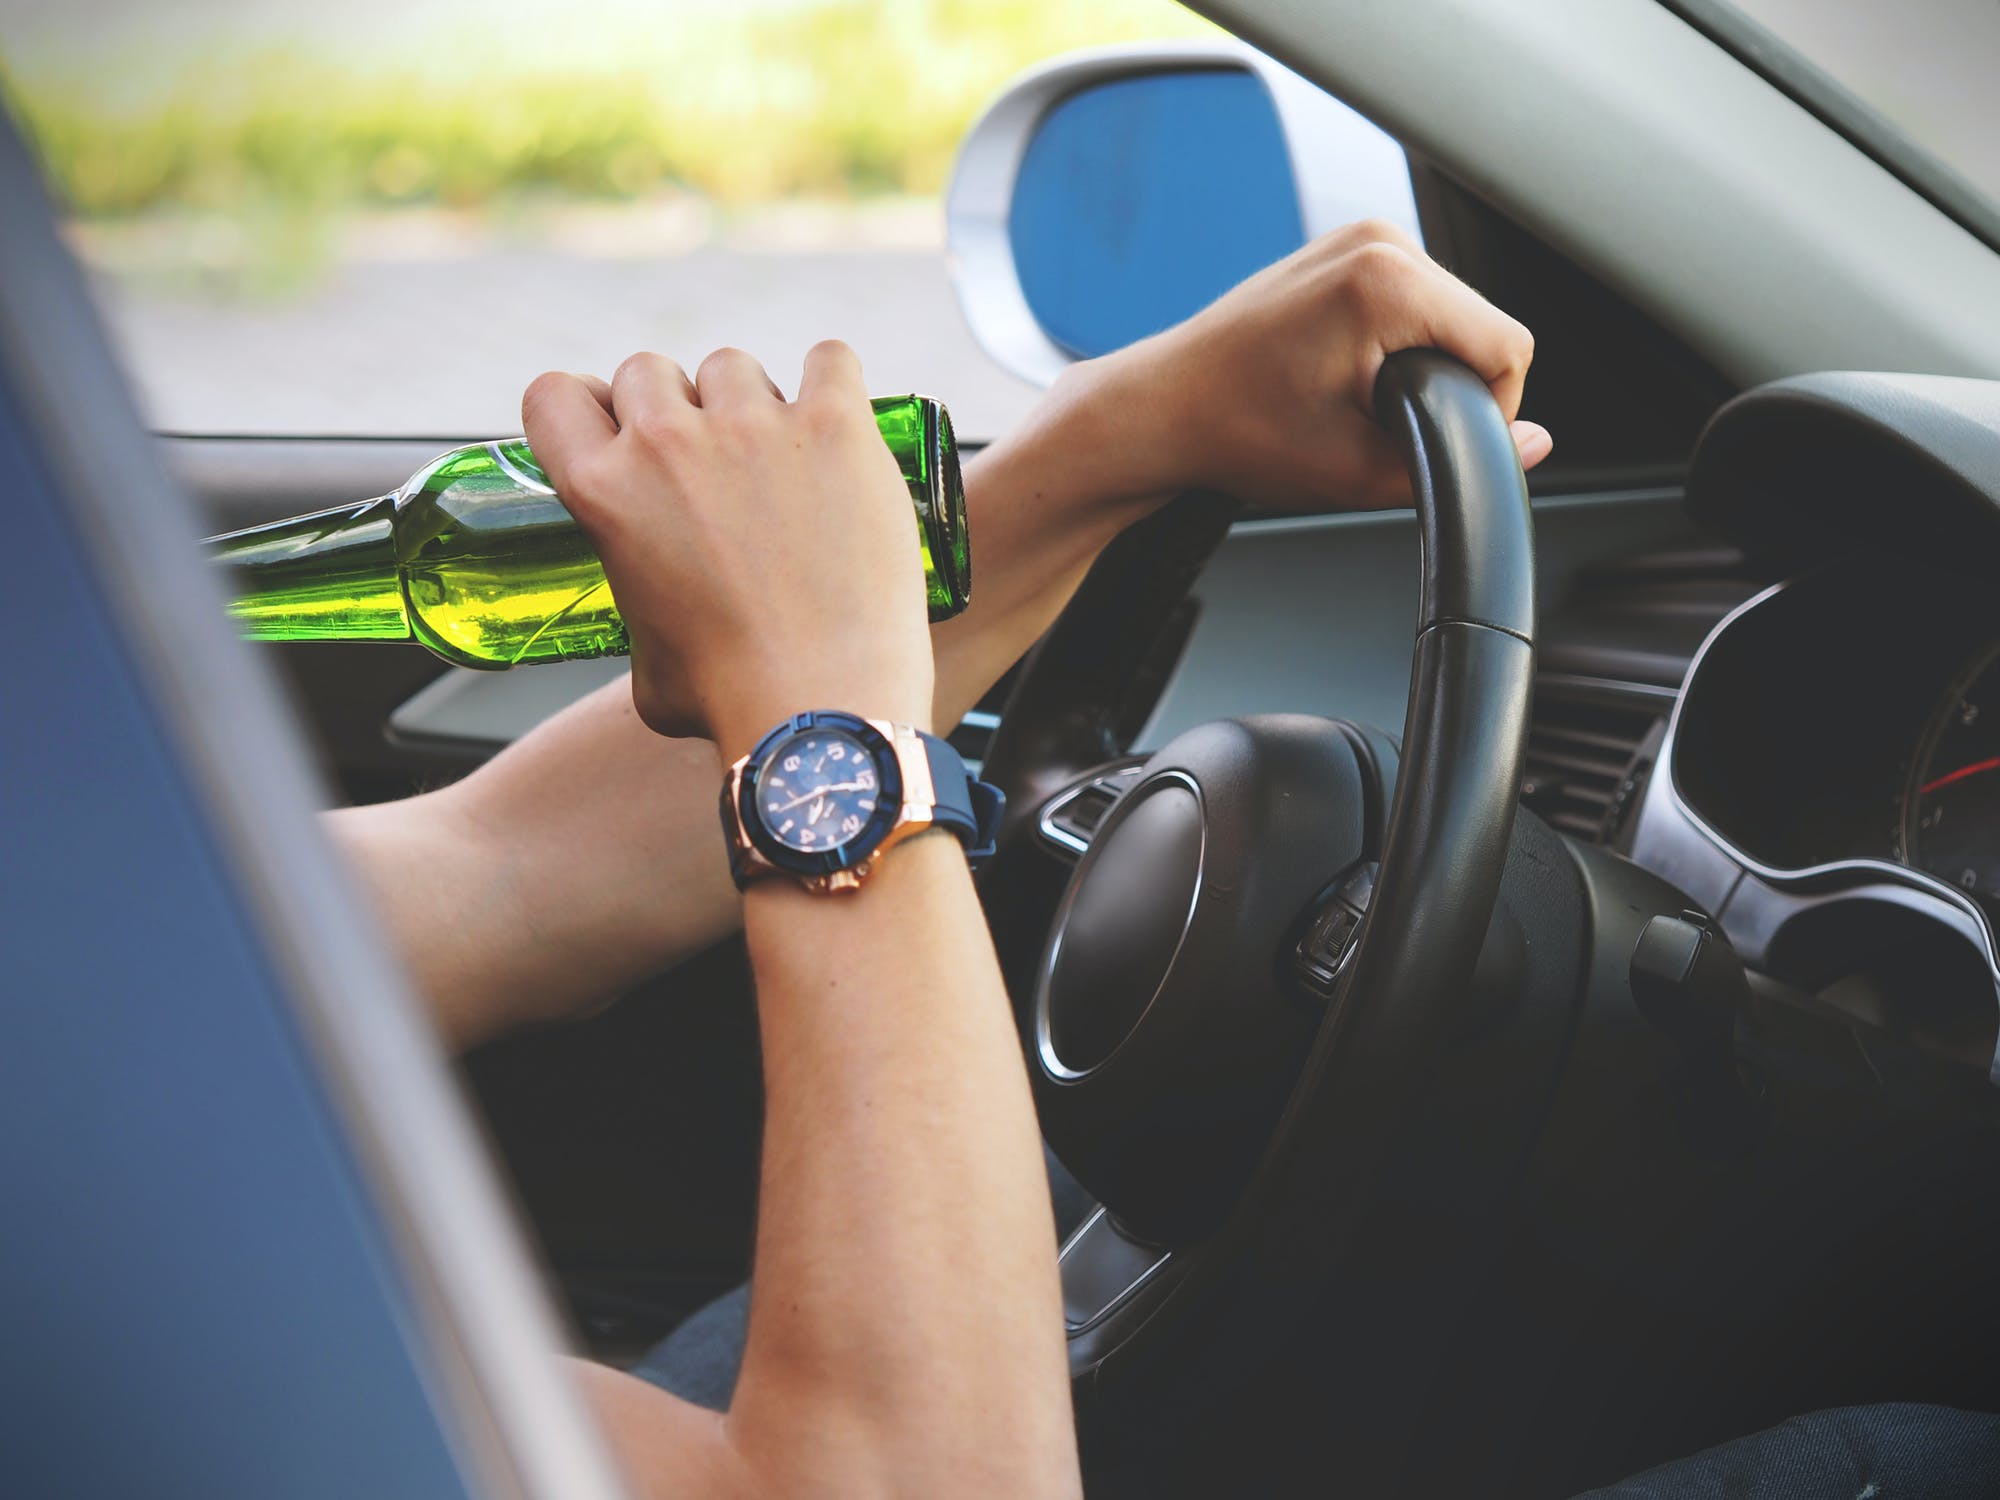 How Does Alcohol Affect Driving?